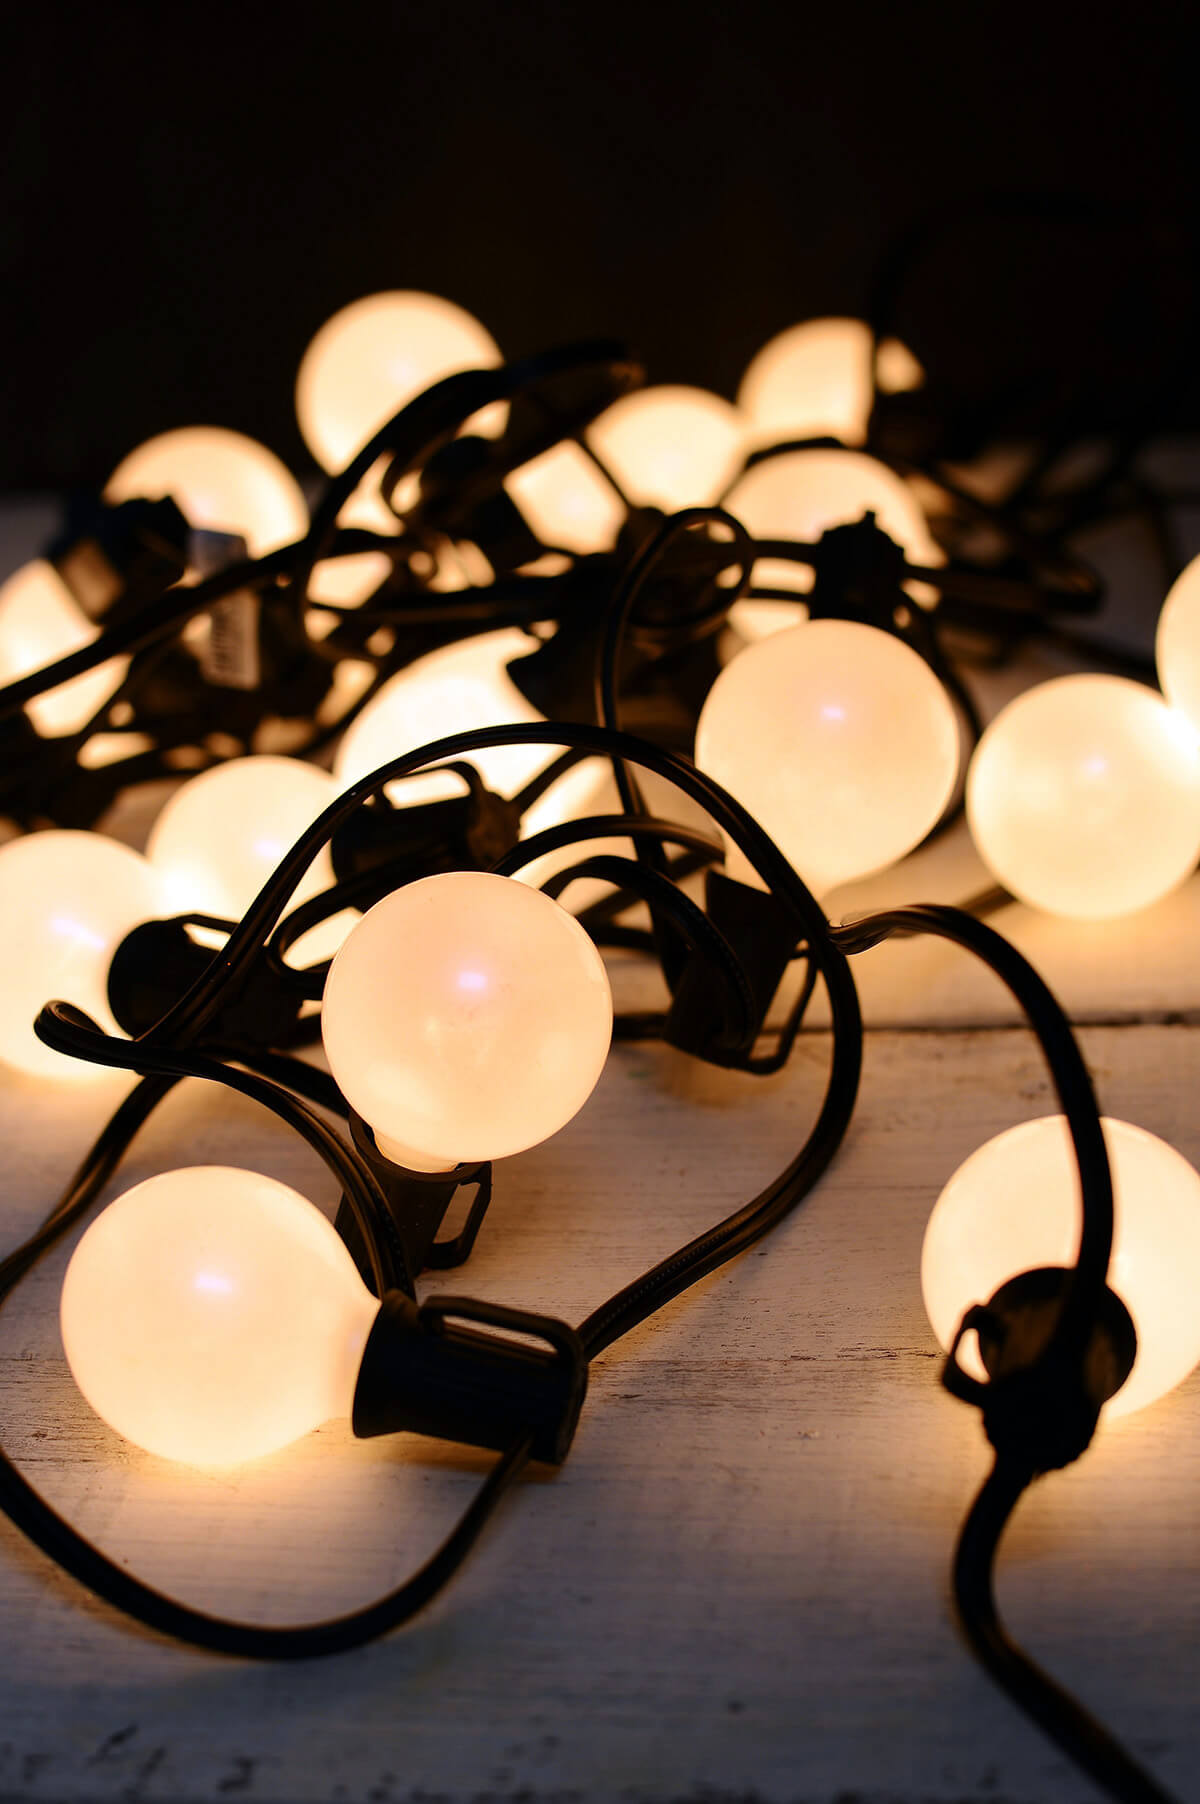 G40 String Lights Wedding : Pearl White Globe String Lights Set of 25 G40 Indoor Outdoor 24 Feet